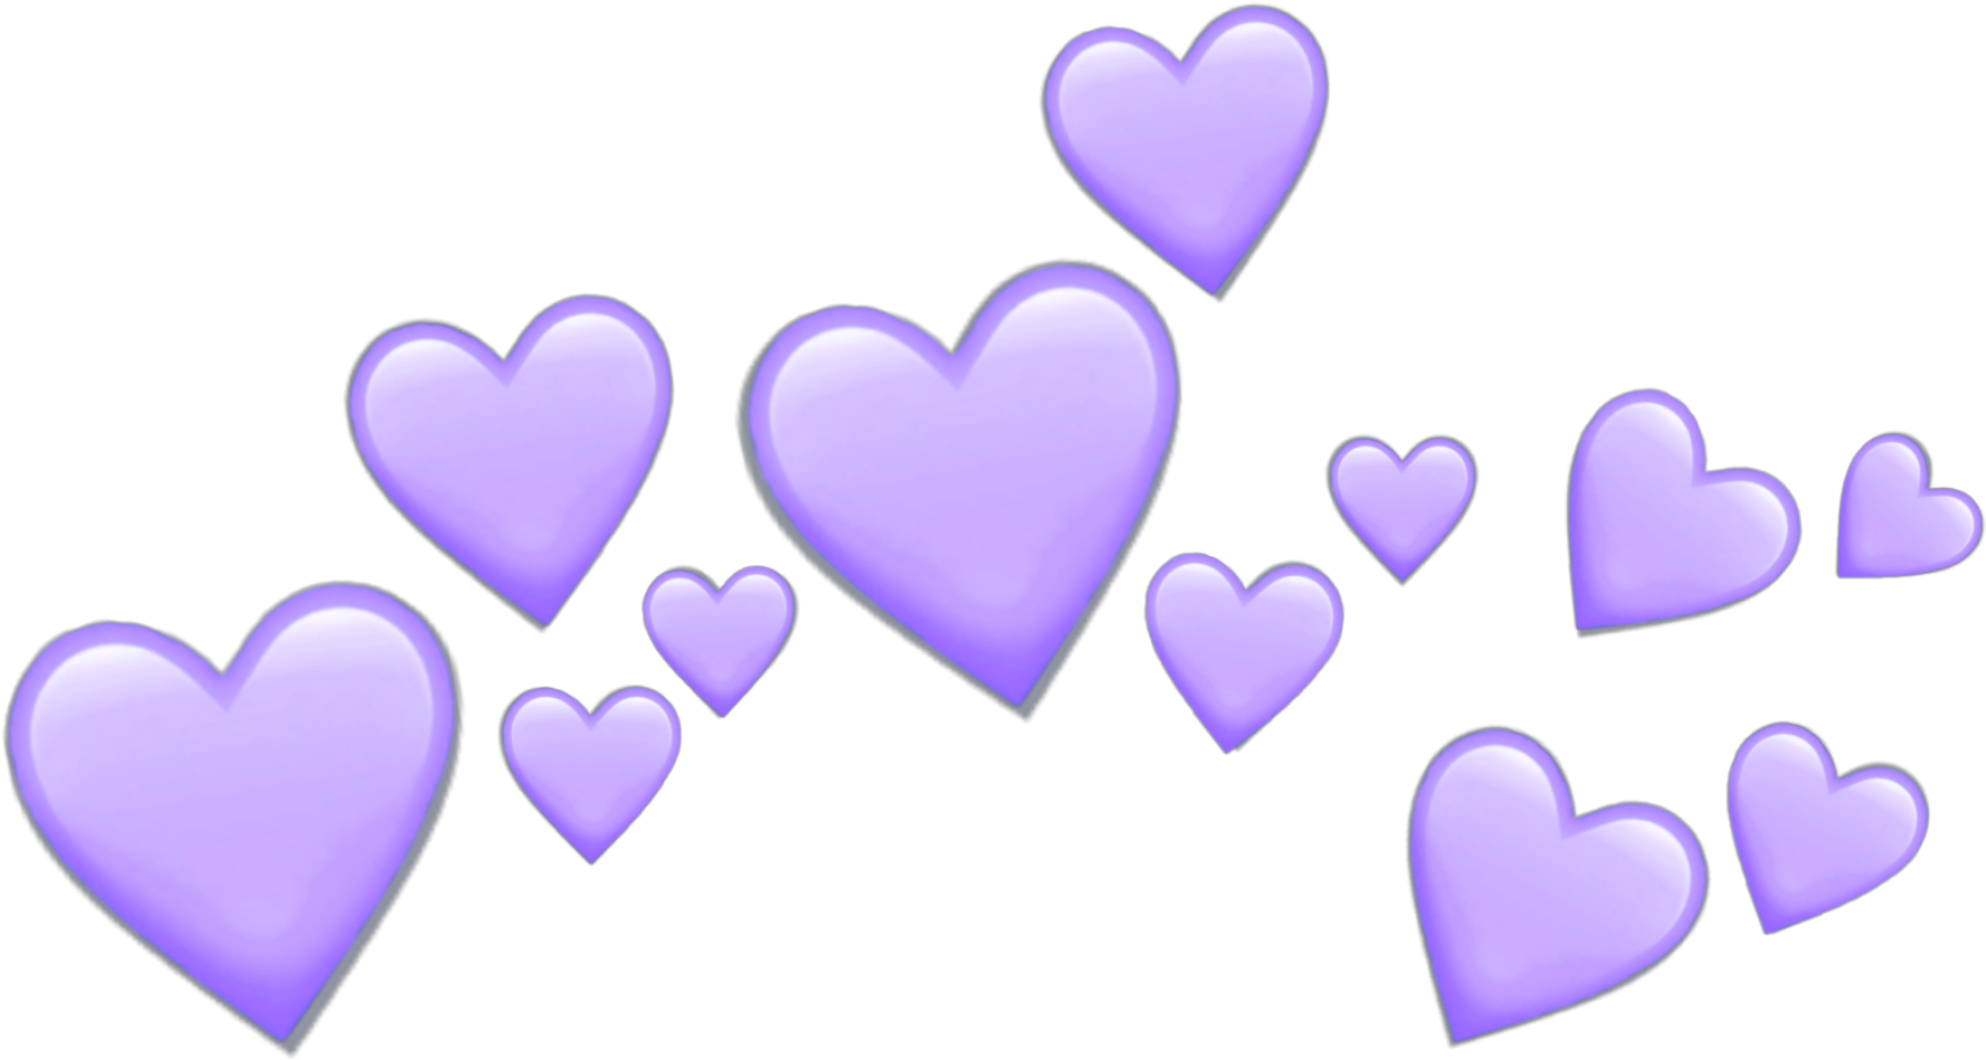 Purple Hearts Heart Purpleheart Crown Tumblr Emoji.